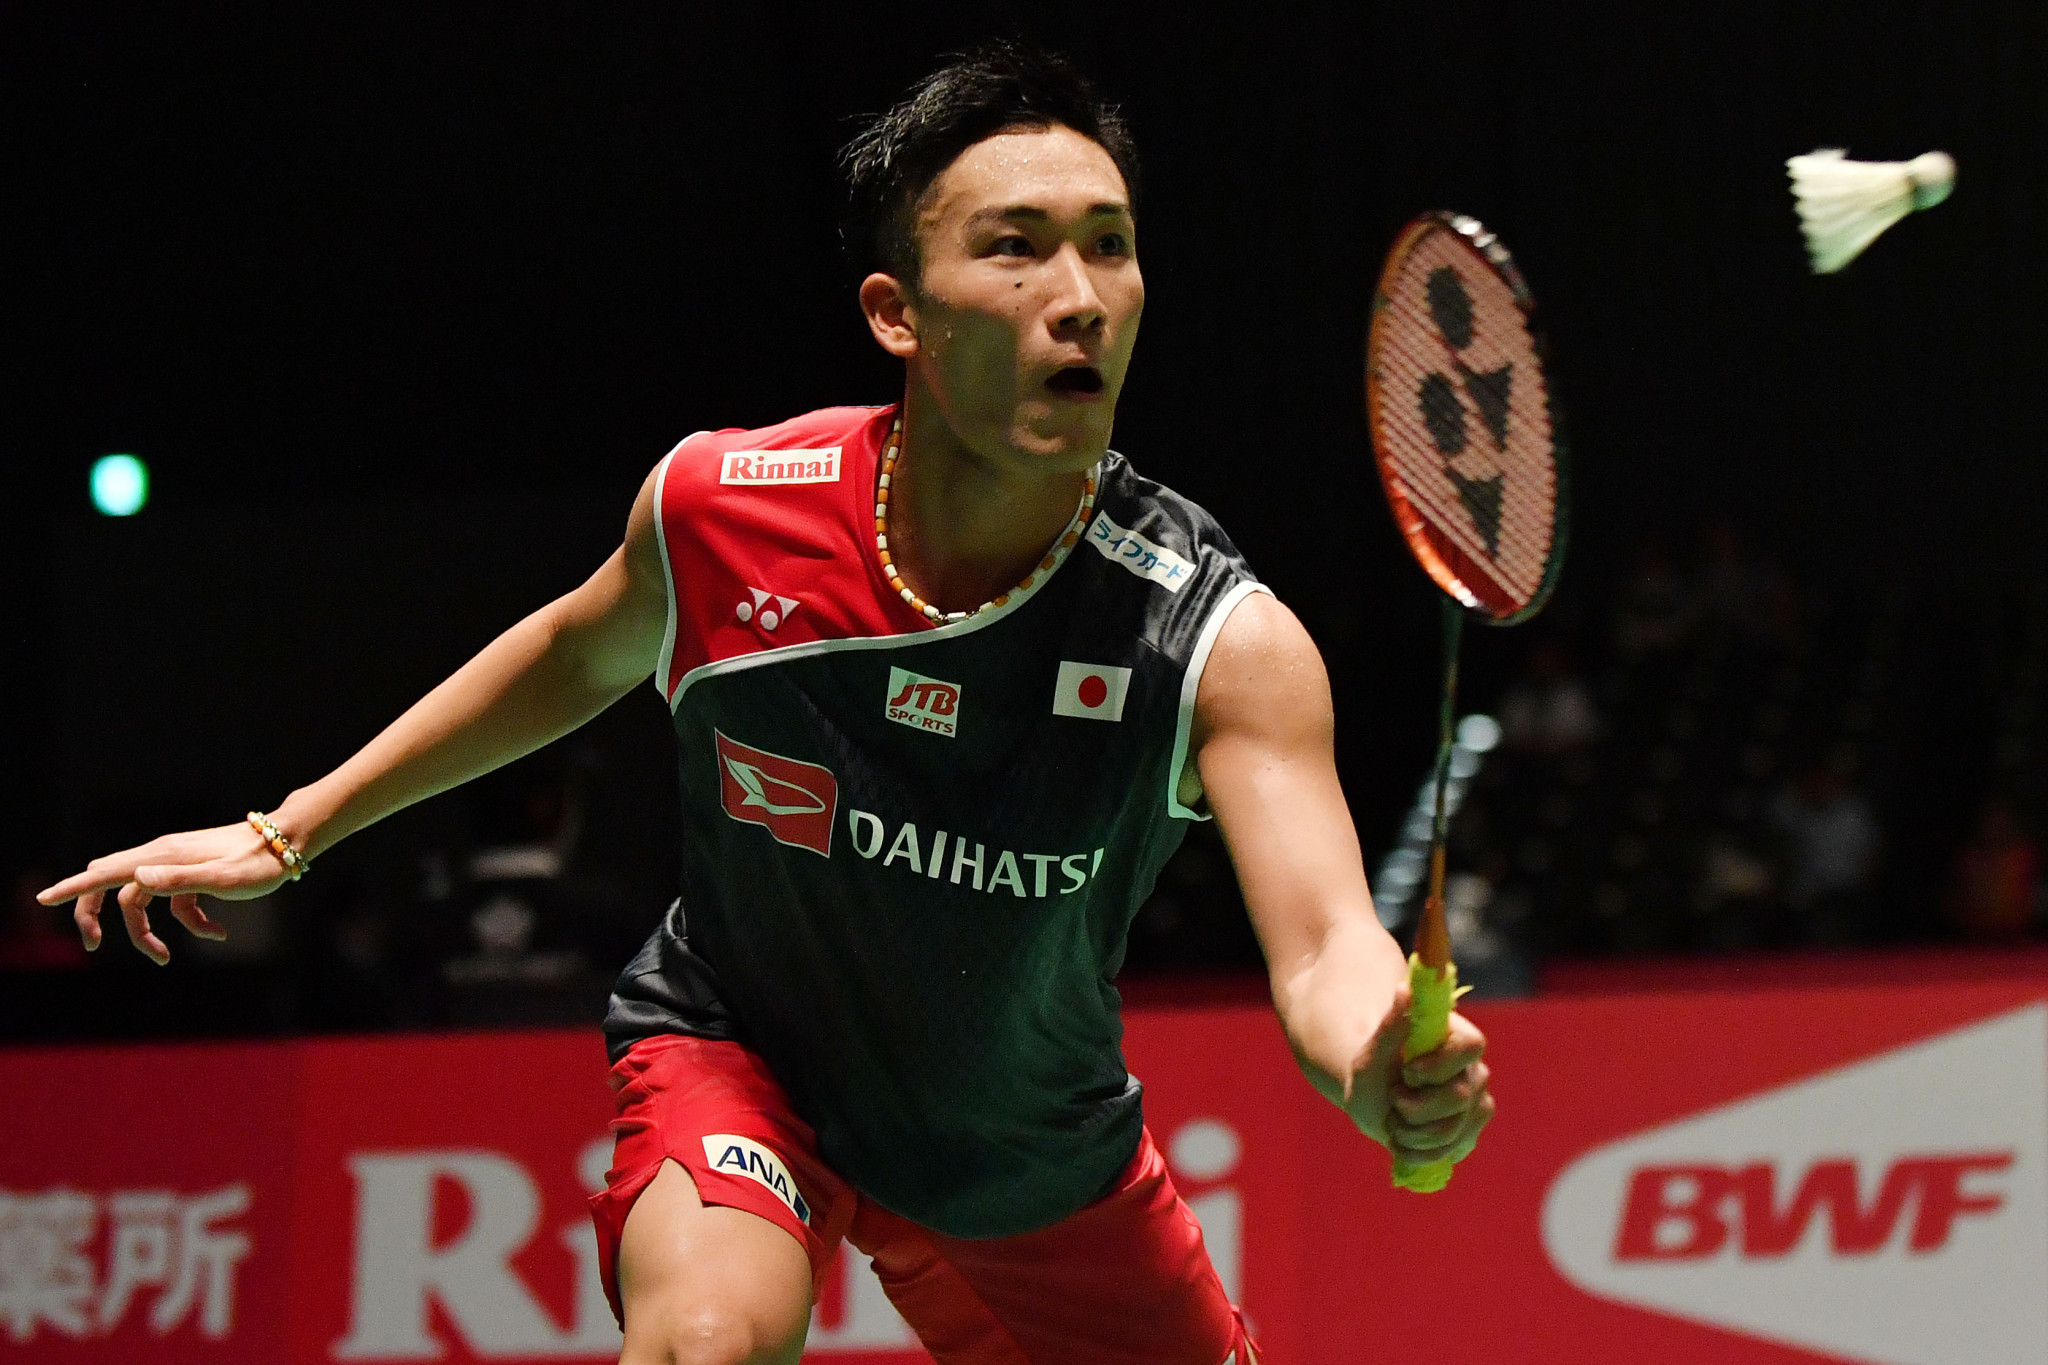 Reigning world champion Kento Momota set up a mouthwatering quarter final with double Olympic gold medallist Lin Dan ©Getty Images